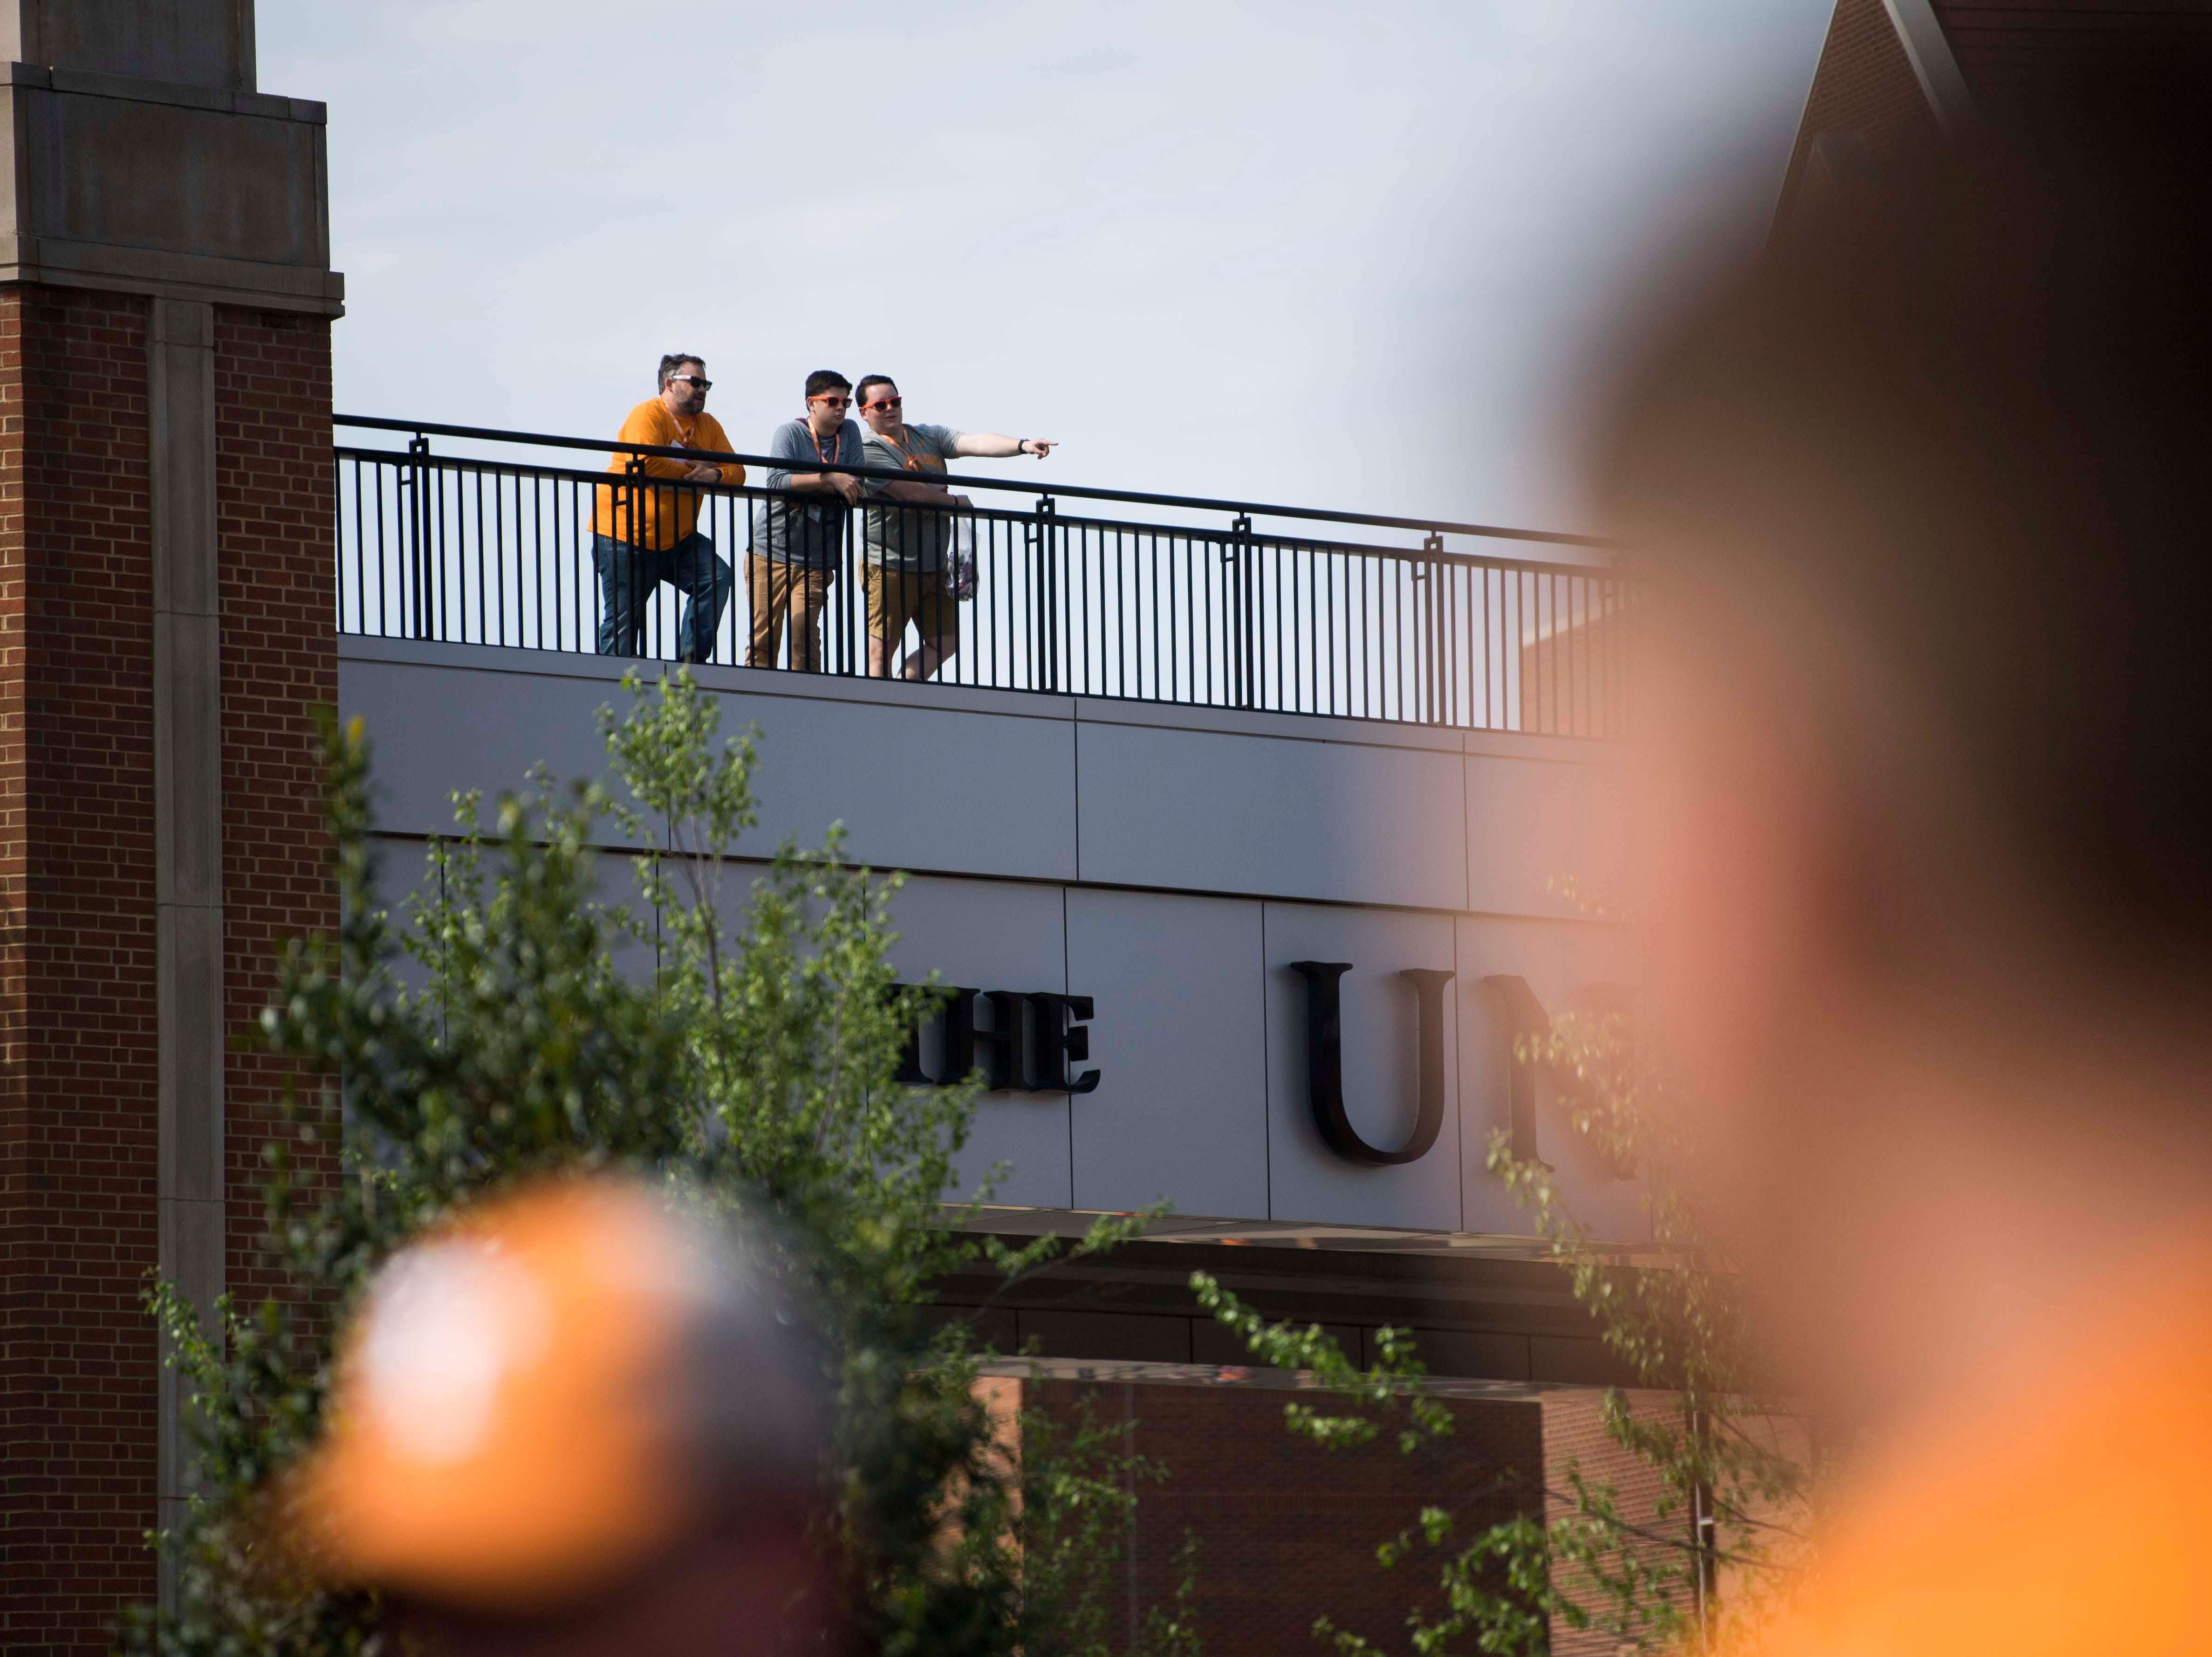 Fans stand on the pedestrian bridge while waiting for the Vols spring game to begin outside Neyland Stadium in Knoxville Saturday, April 13, 2019.